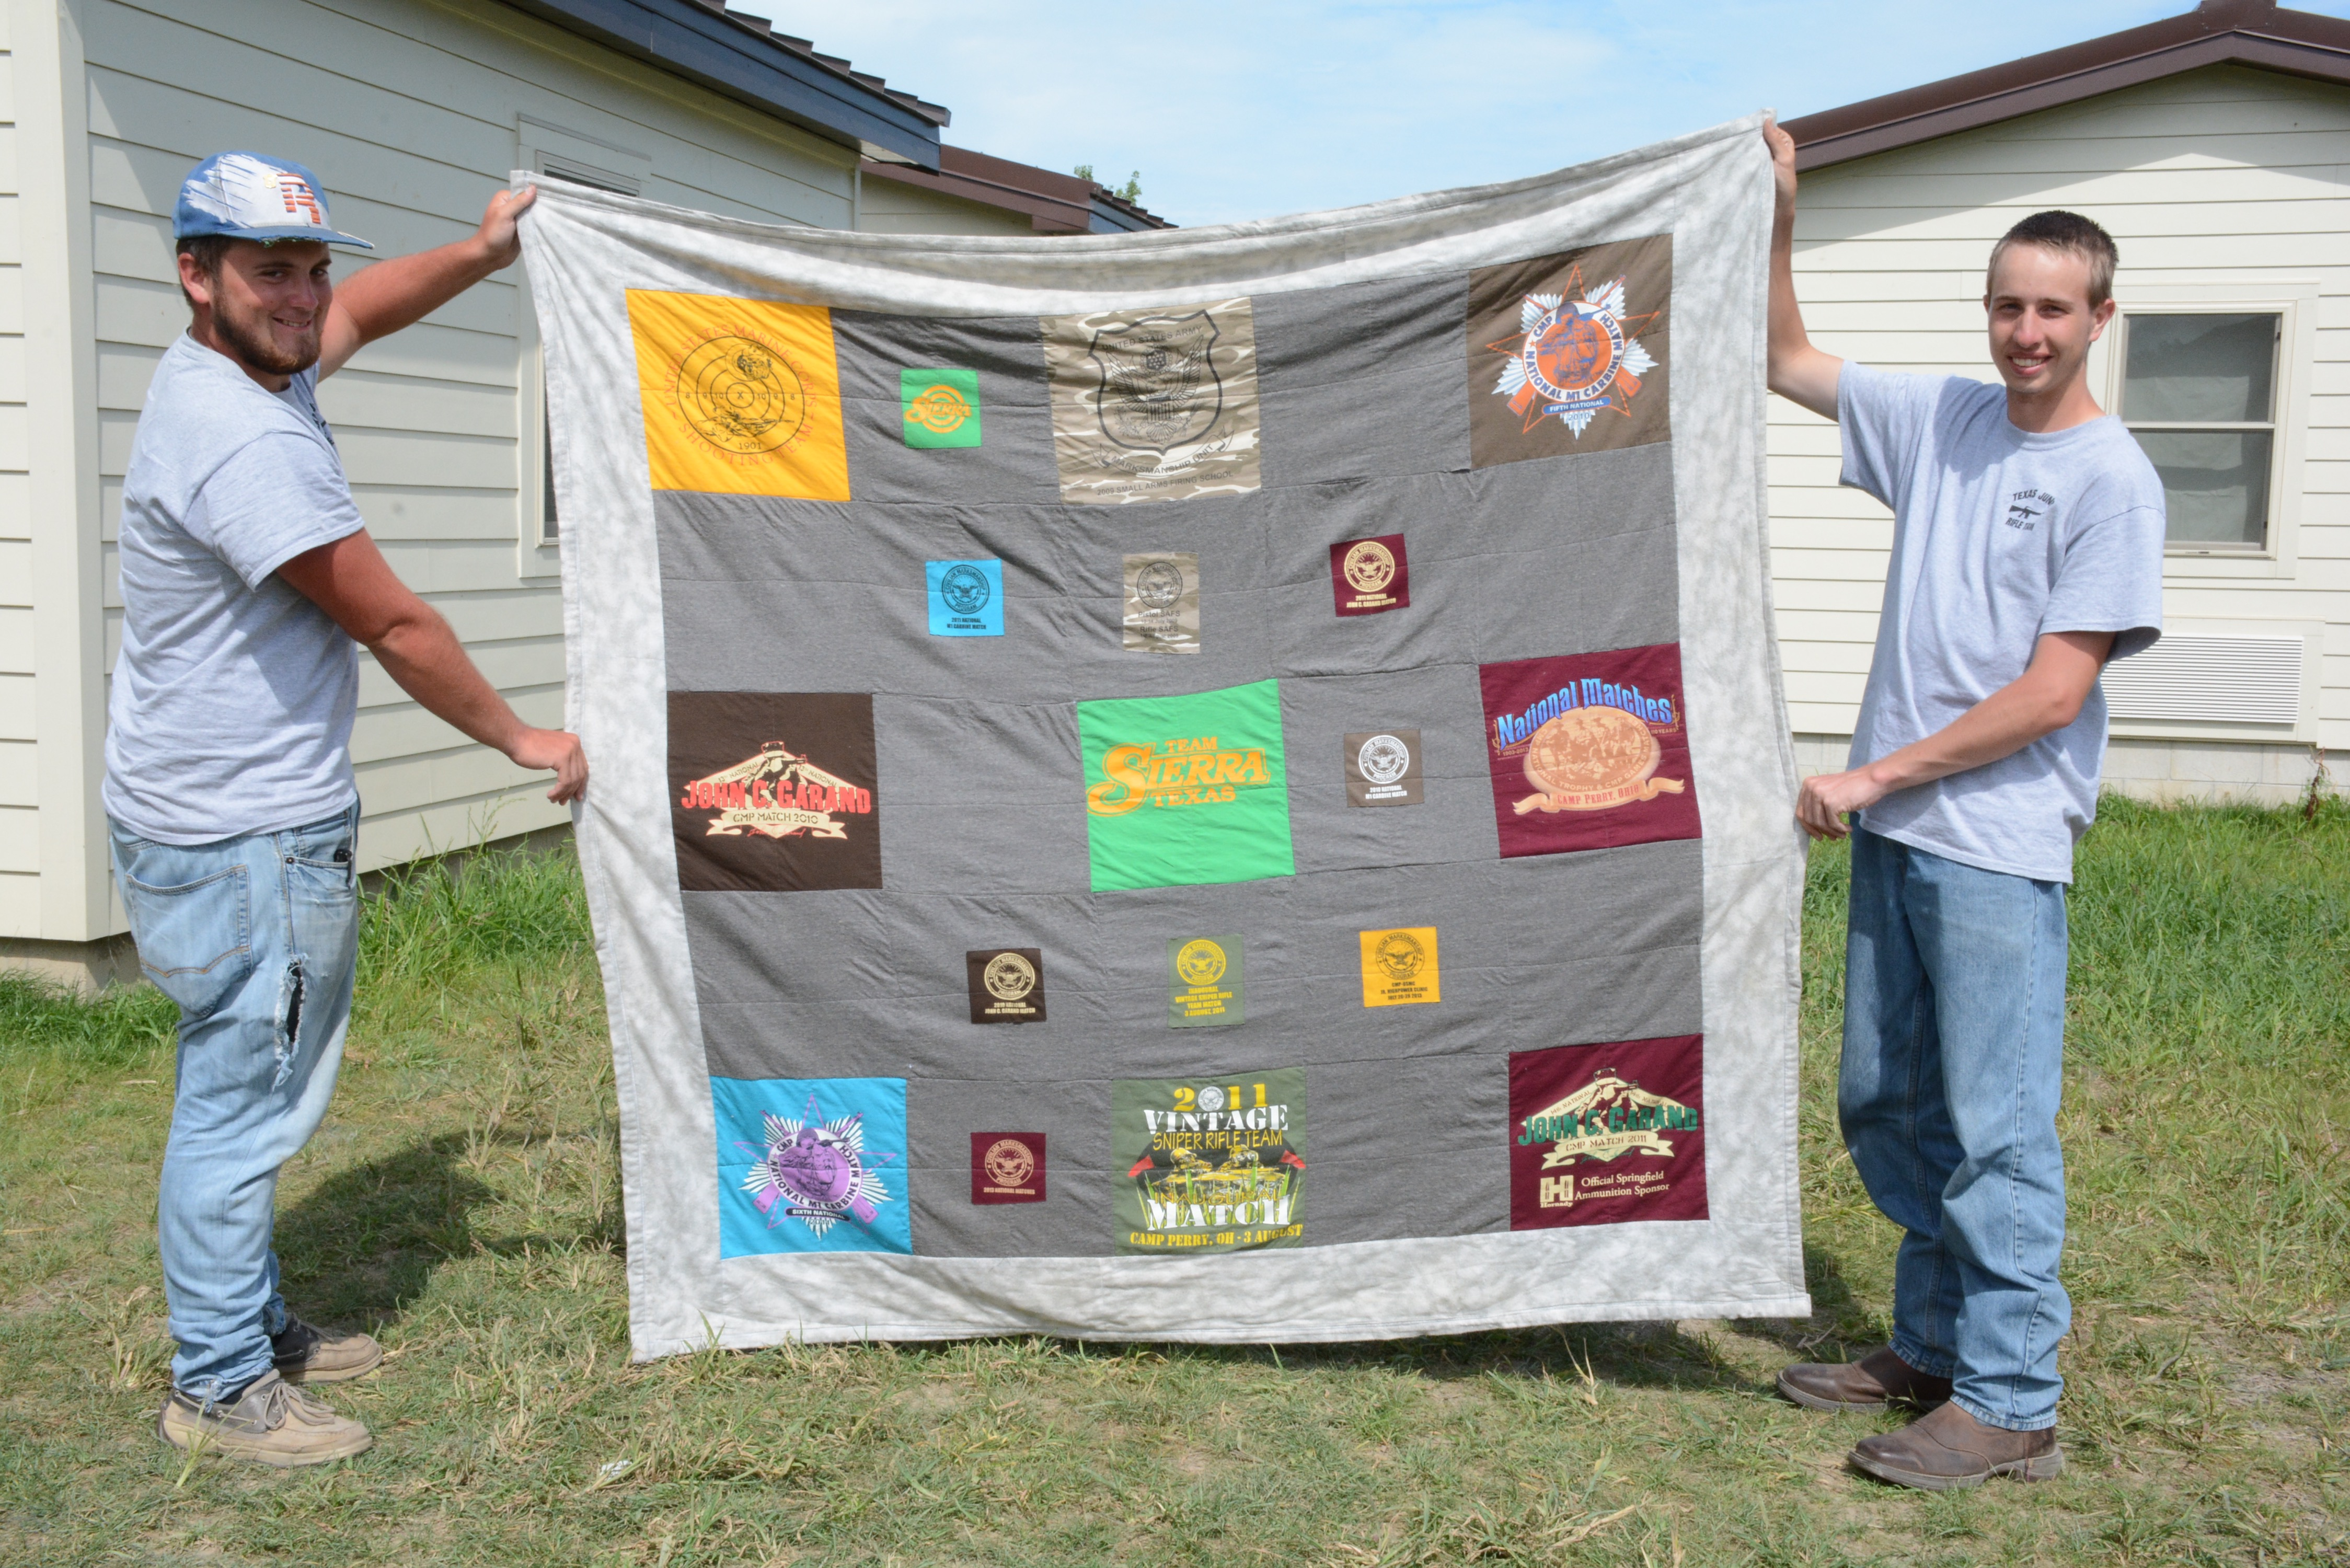 Eric McDaniels (right) holds a blanket covered with patches of old t-shirts he's acquired during his many trips to the National Matches. The blanket was a gift from his very talented and thoughtful grandmother. Teammate James Chesley (left) assists.